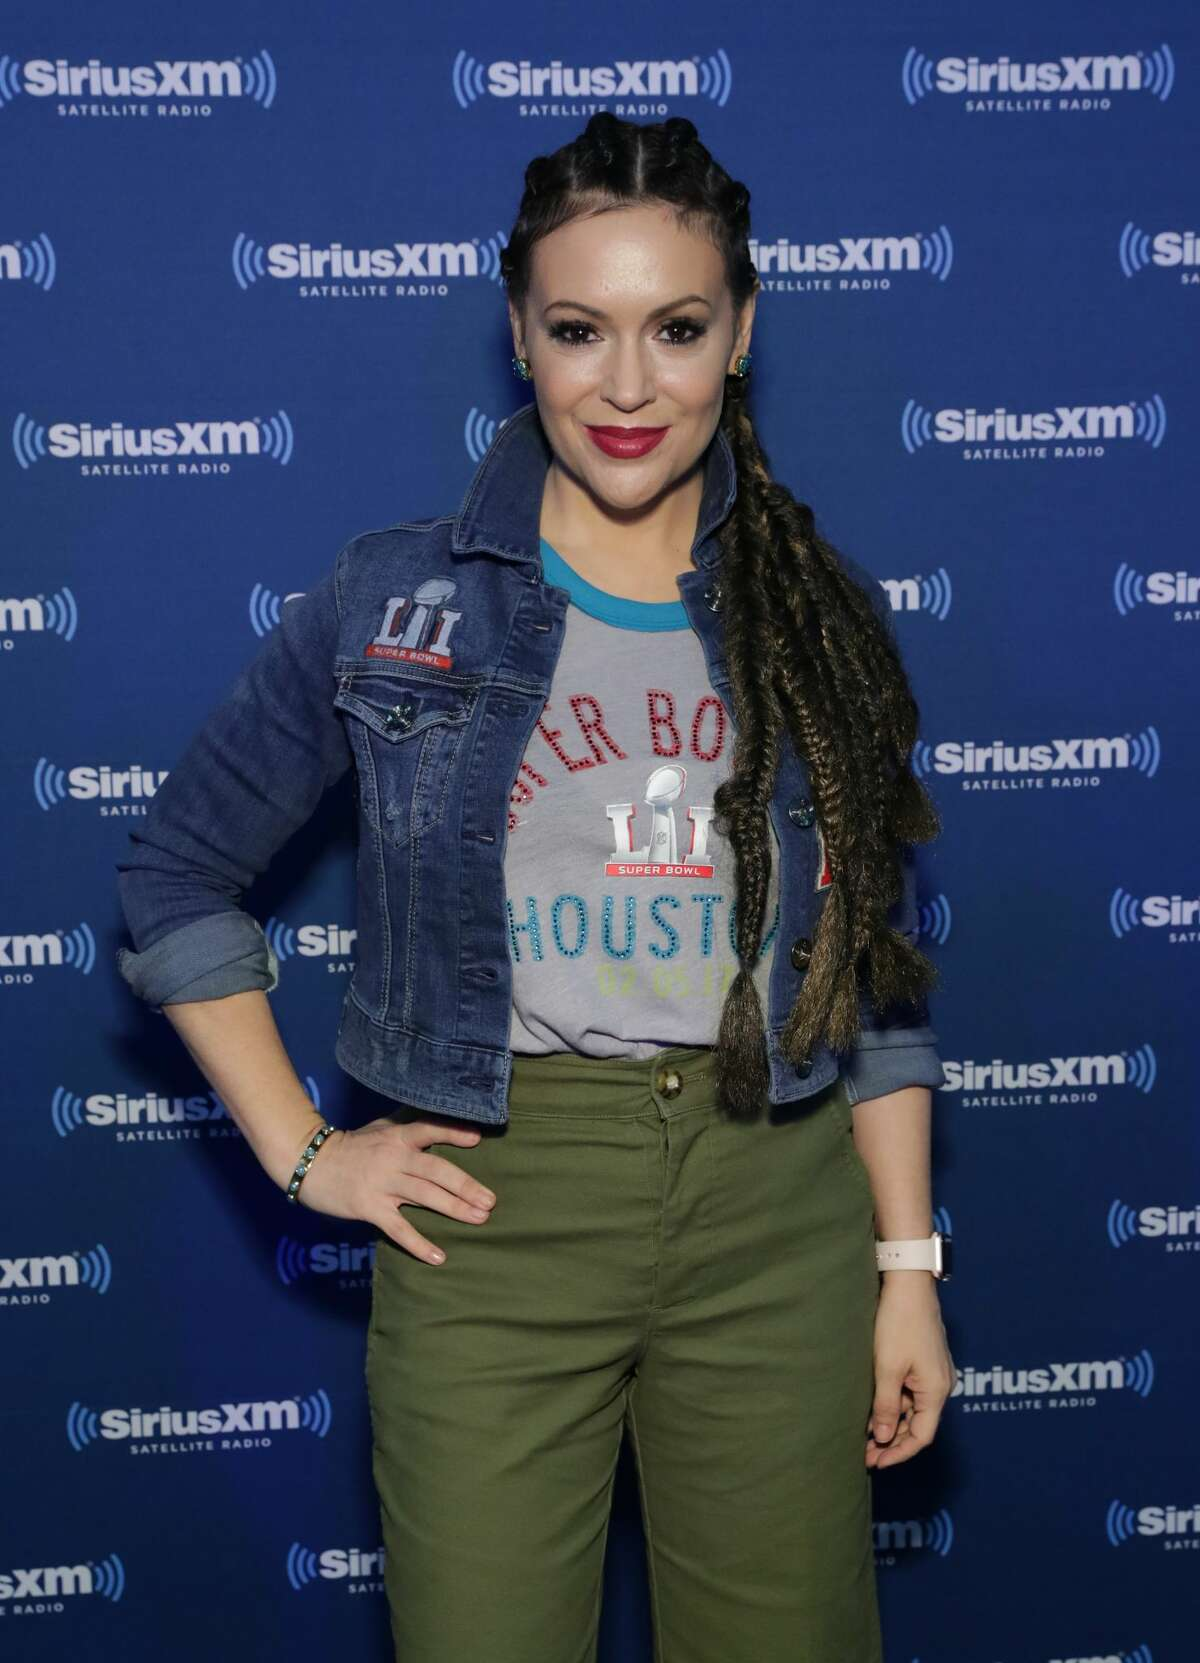 HOUSTON, TX - FEBRUARY 03: Alyssa Milano visits the SiriusXM set at Super Bowl LI Radio Row at the George R. Brown Convention Center on February 3, 2017 in Houston, Texas. (Photo by Cindy Ord/Getty Images for SiriusXM )